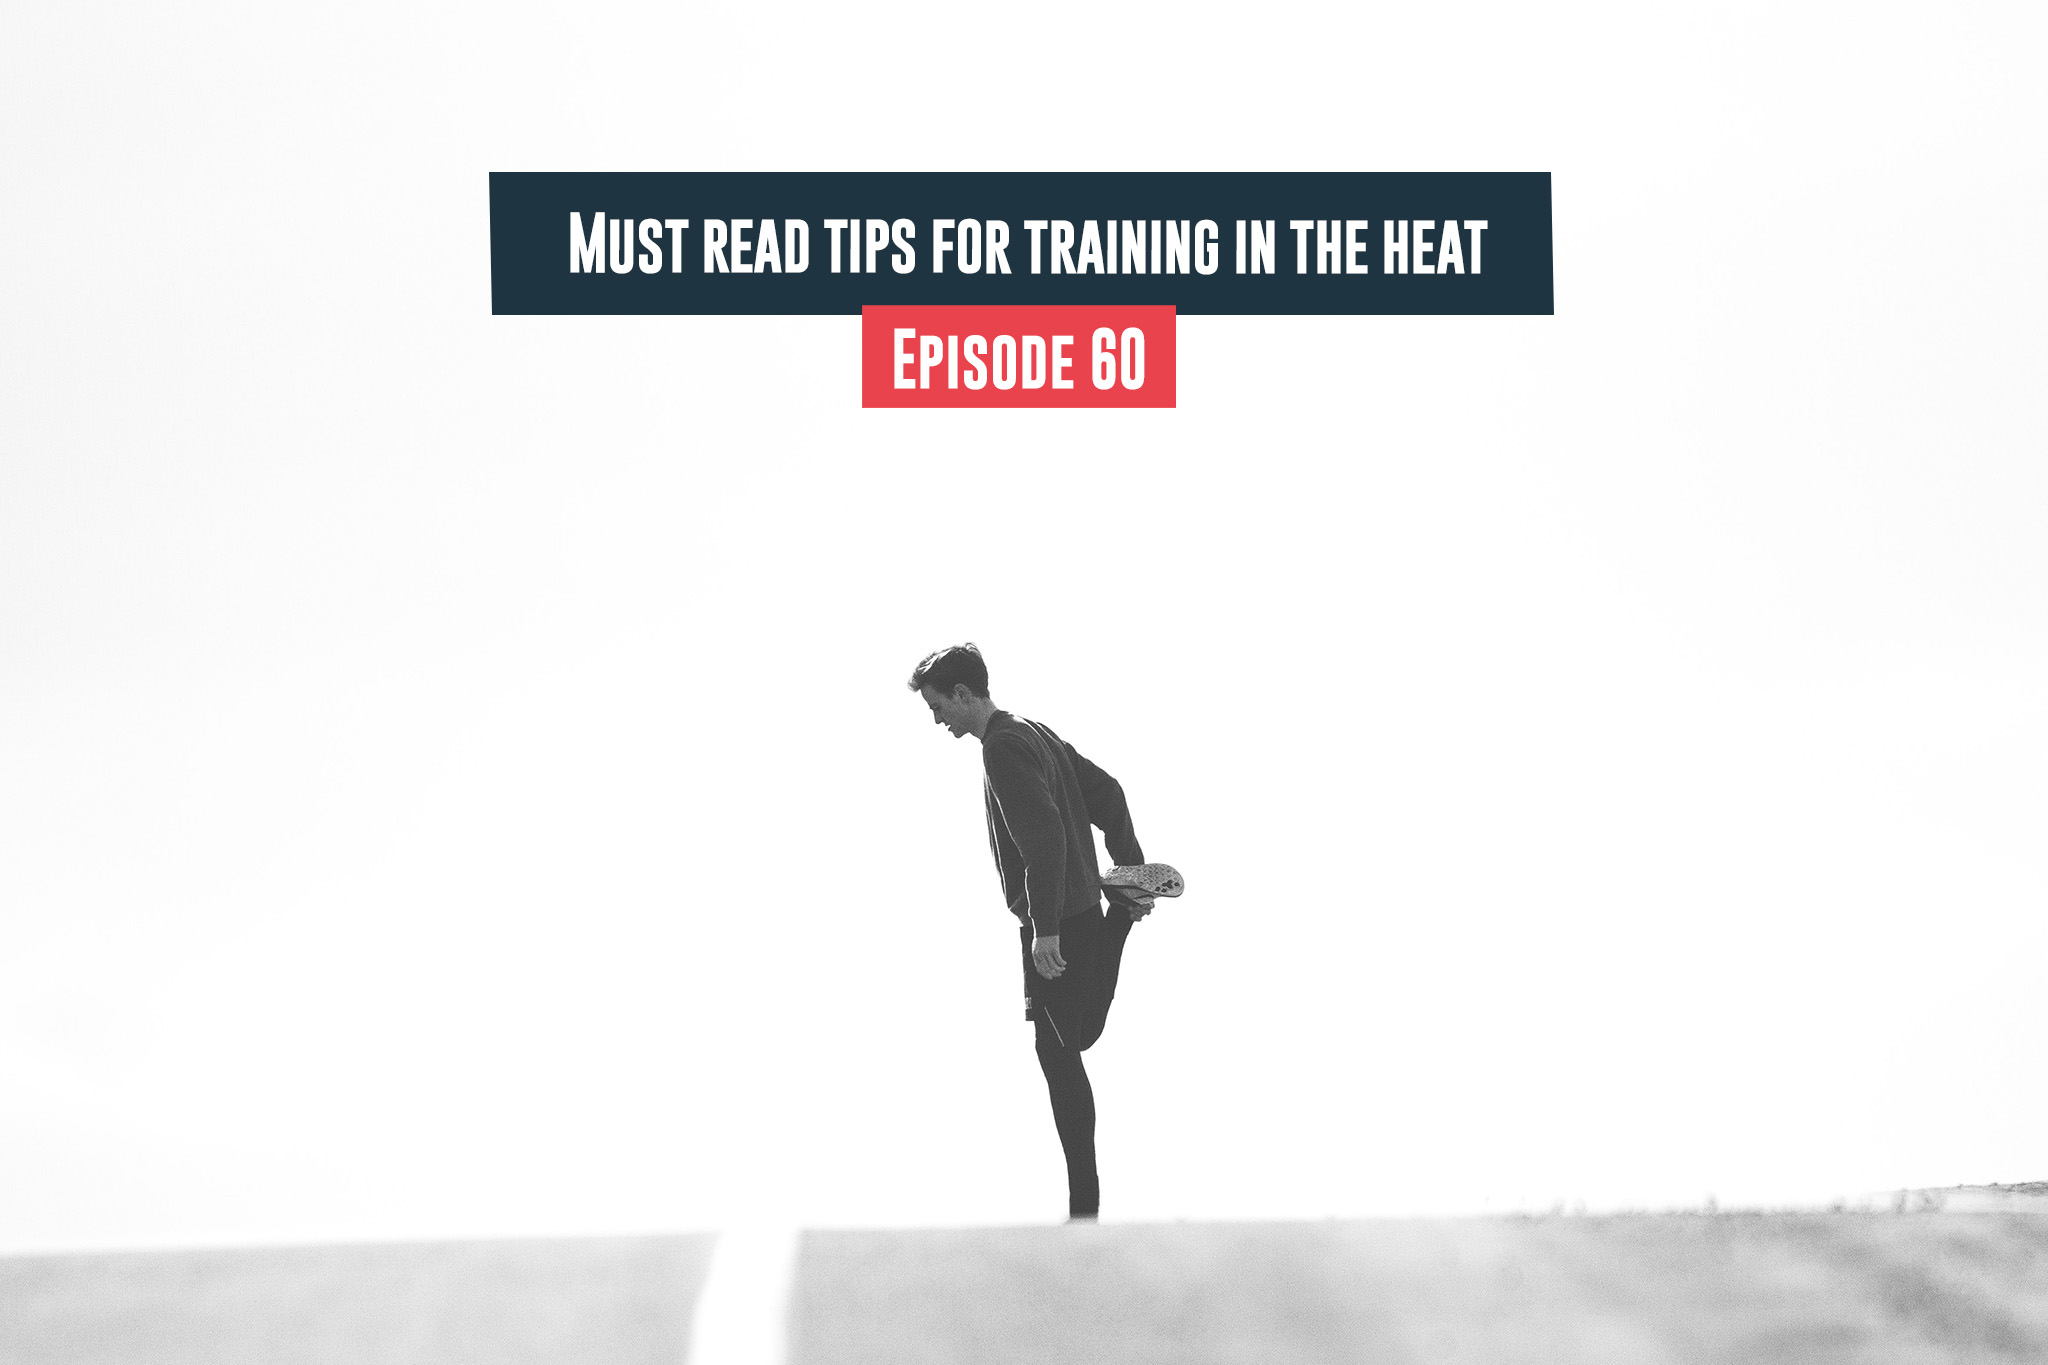 Tips For Training In The Heat